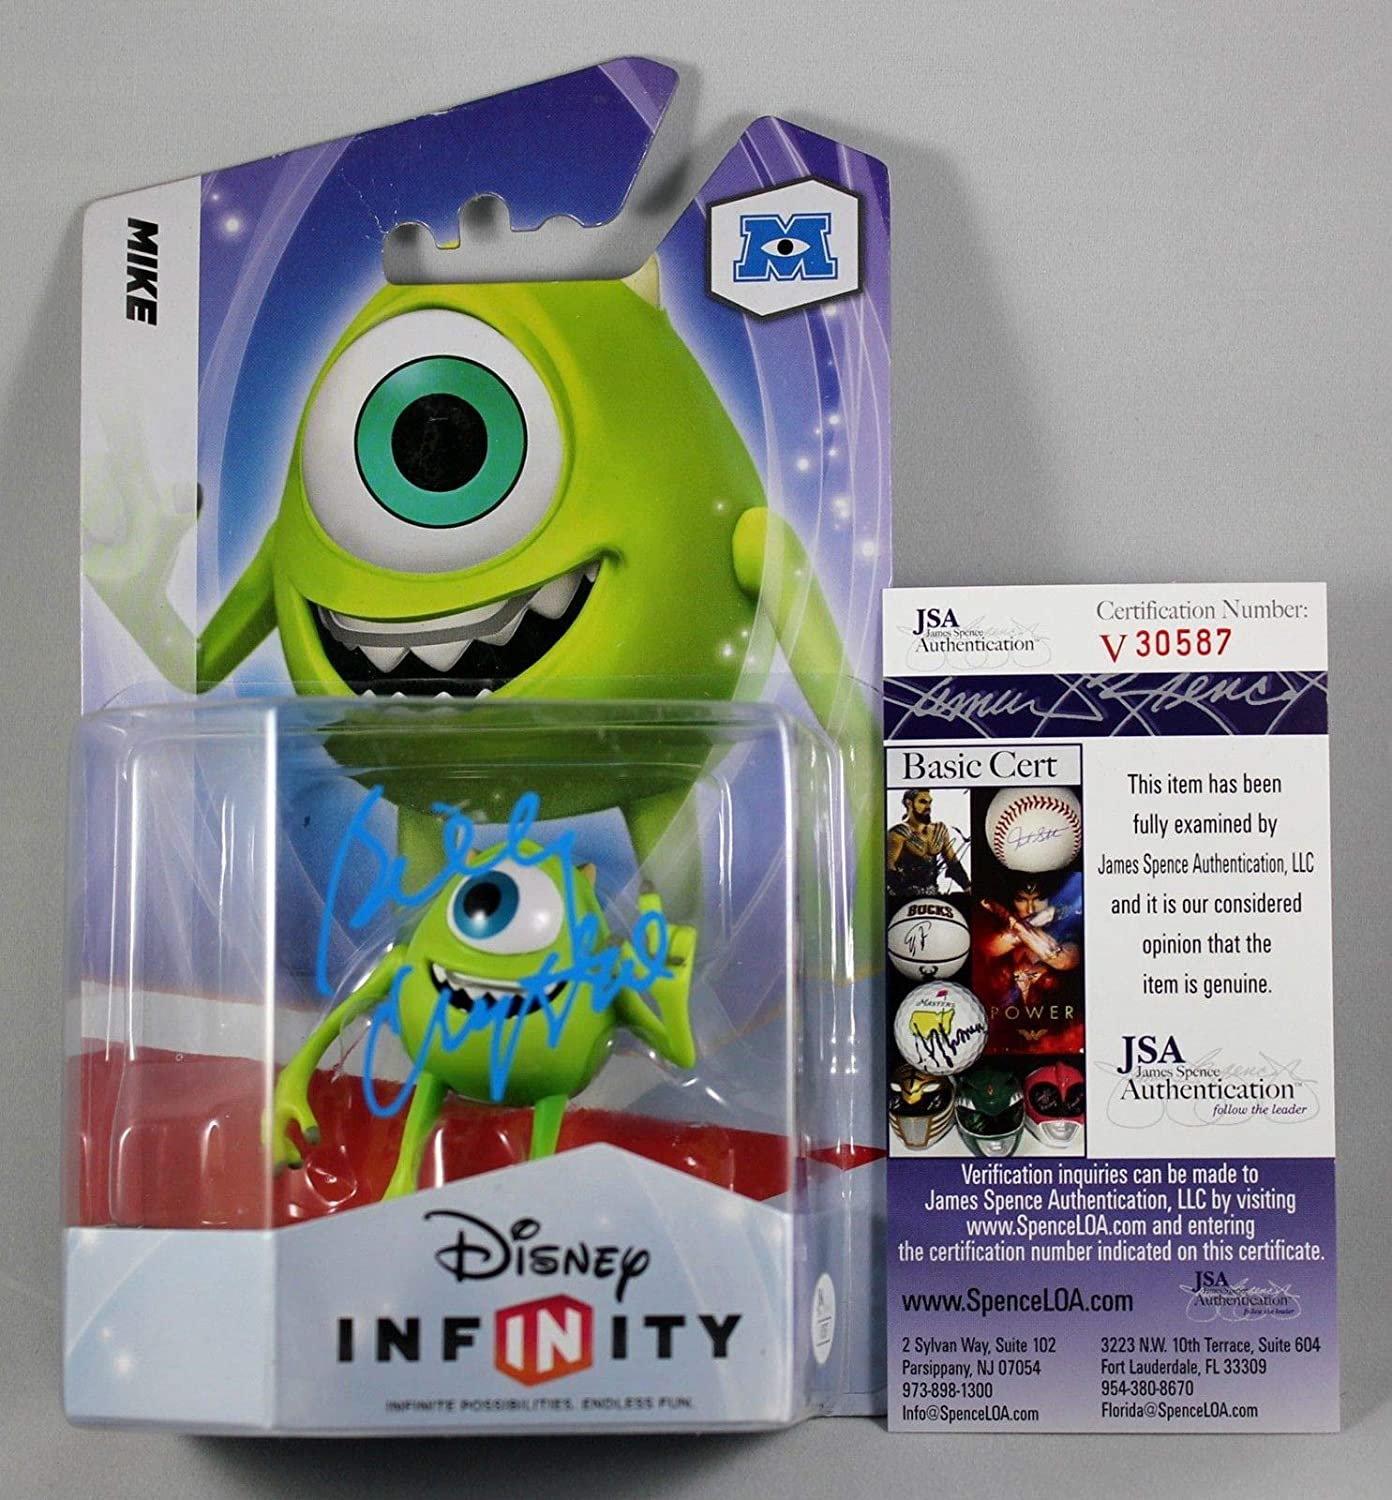 Billy Crystal Signed Infinity Mike Challenge the lowest price New York Mall Wazowski Figure Monsters Inc